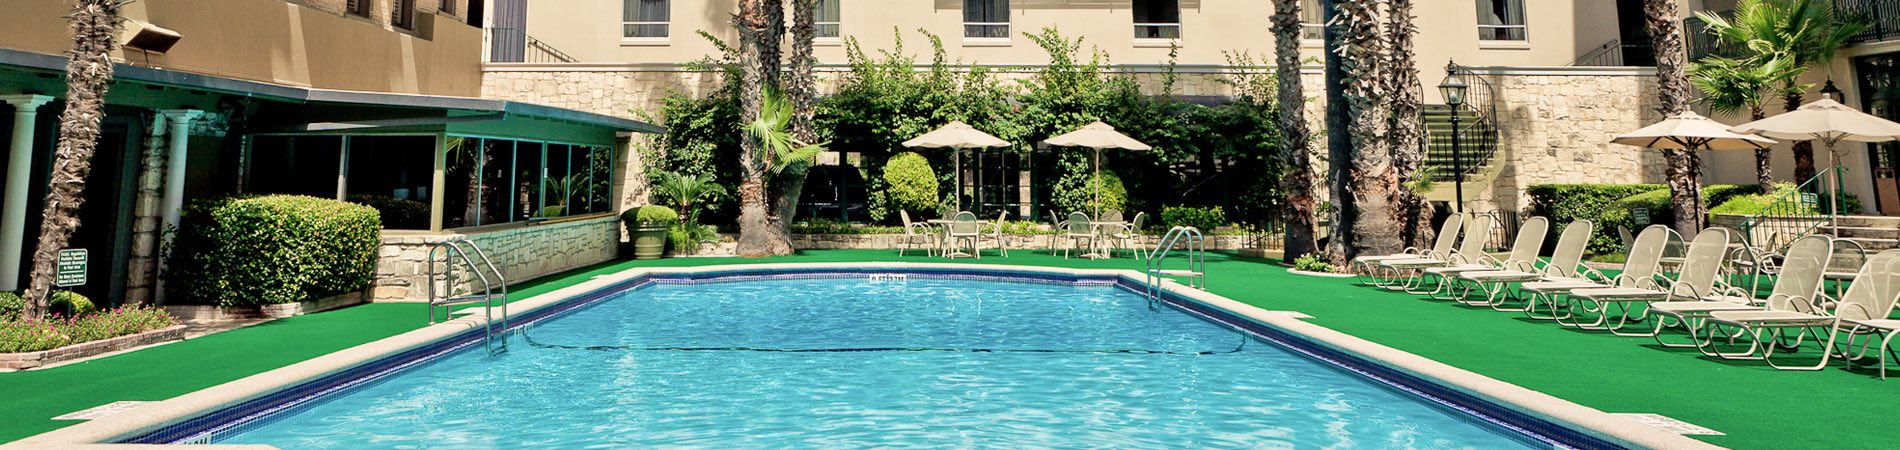 the pool deck at the menger